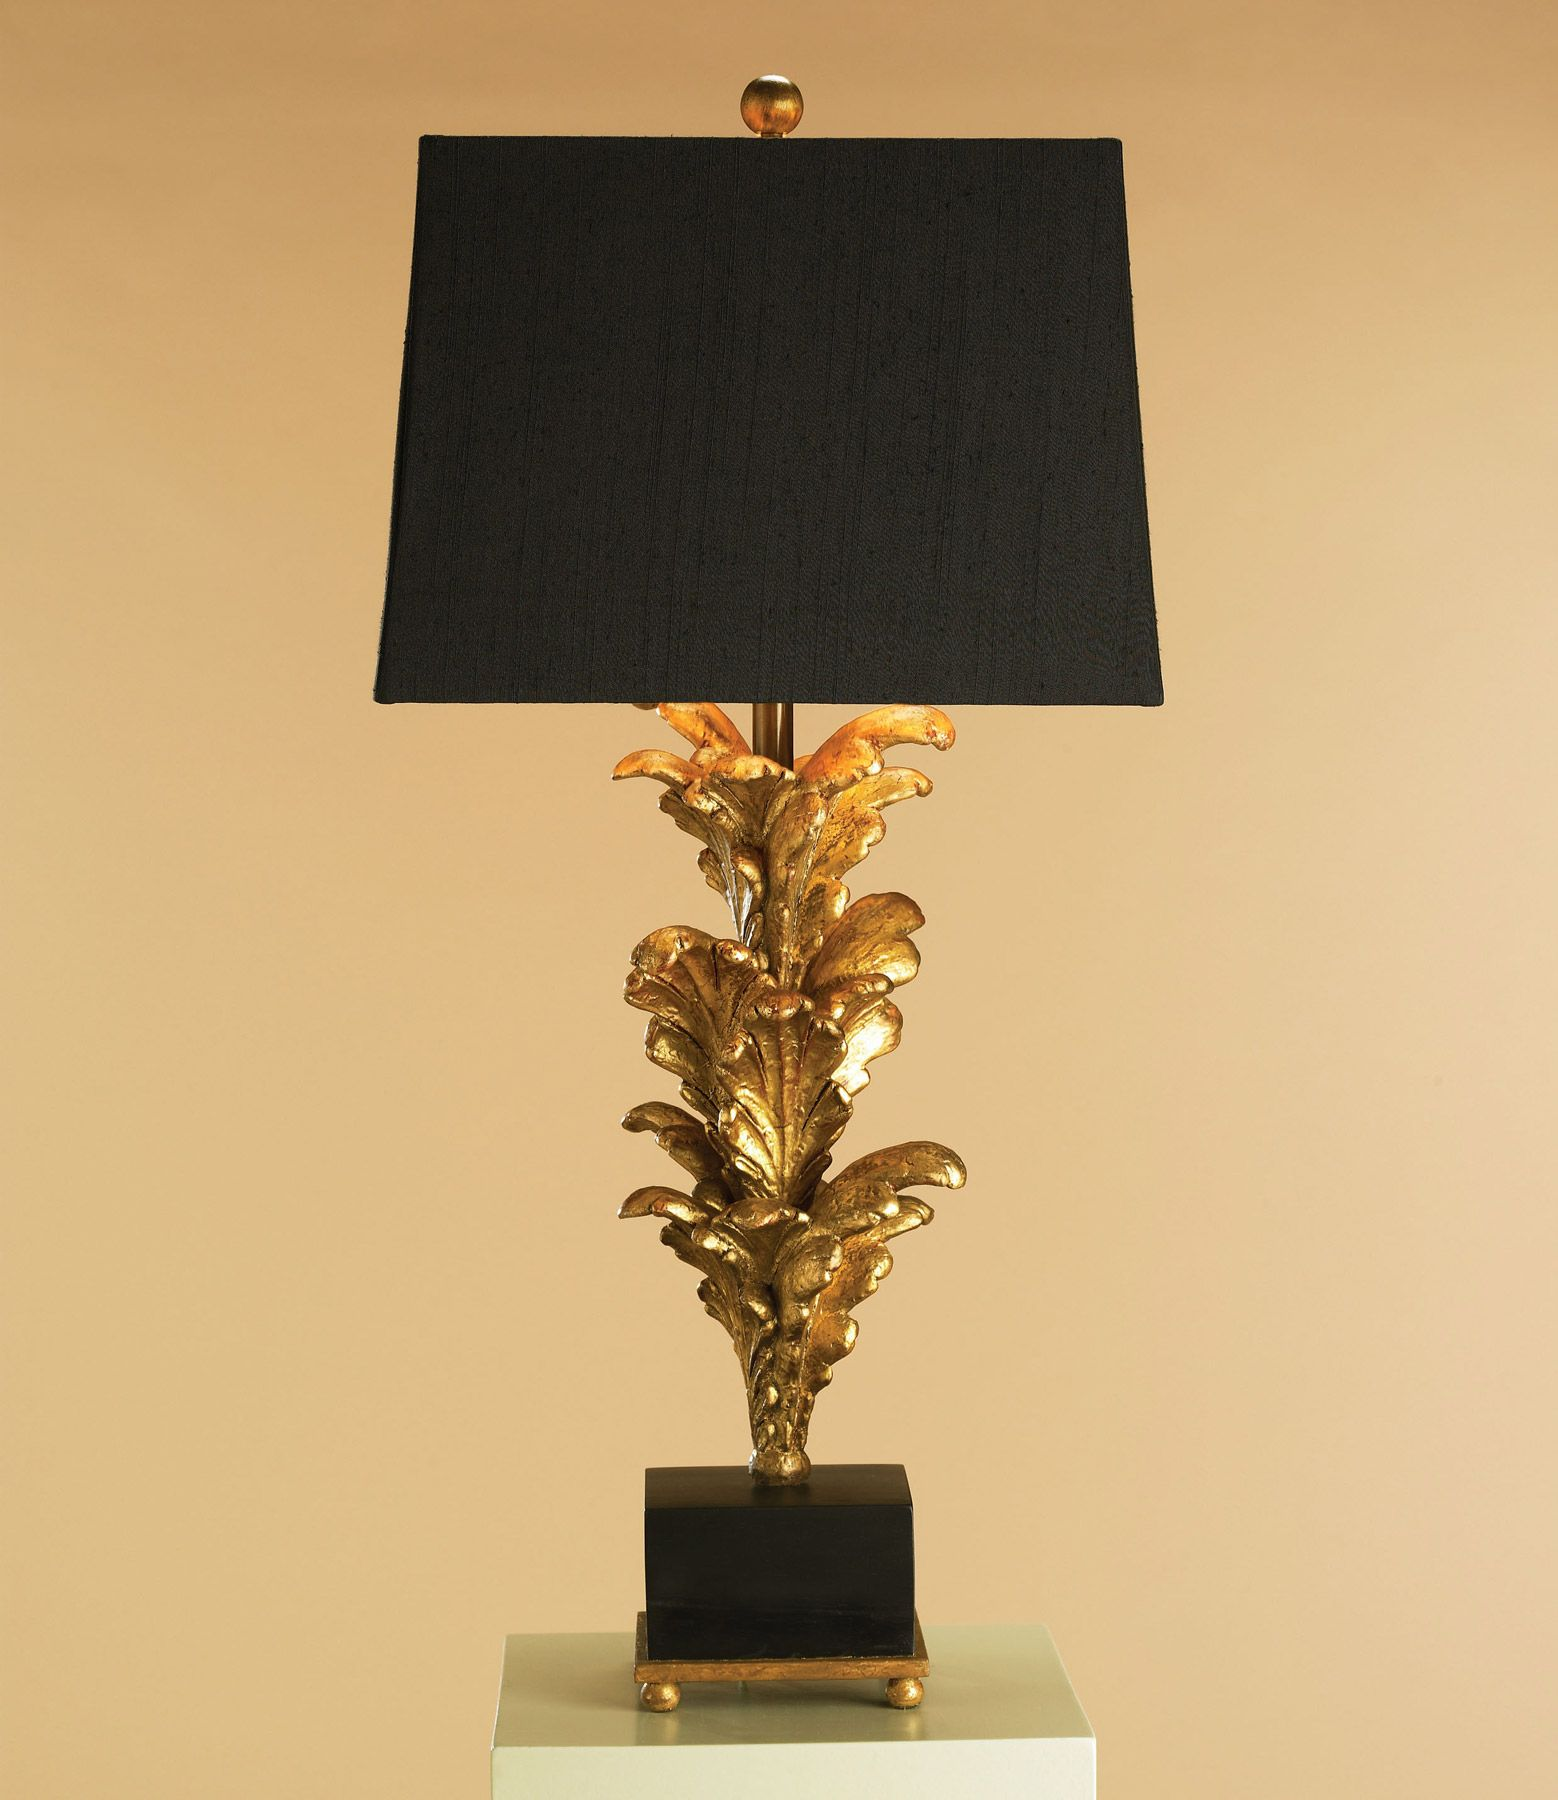 Currey and company 6121 renaissance 1 light table lamp black and currey and company 6121 renaissance 1 light table lamp black and gold leaf finish and a black linen shade with gold lining google search aloadofball Gallery